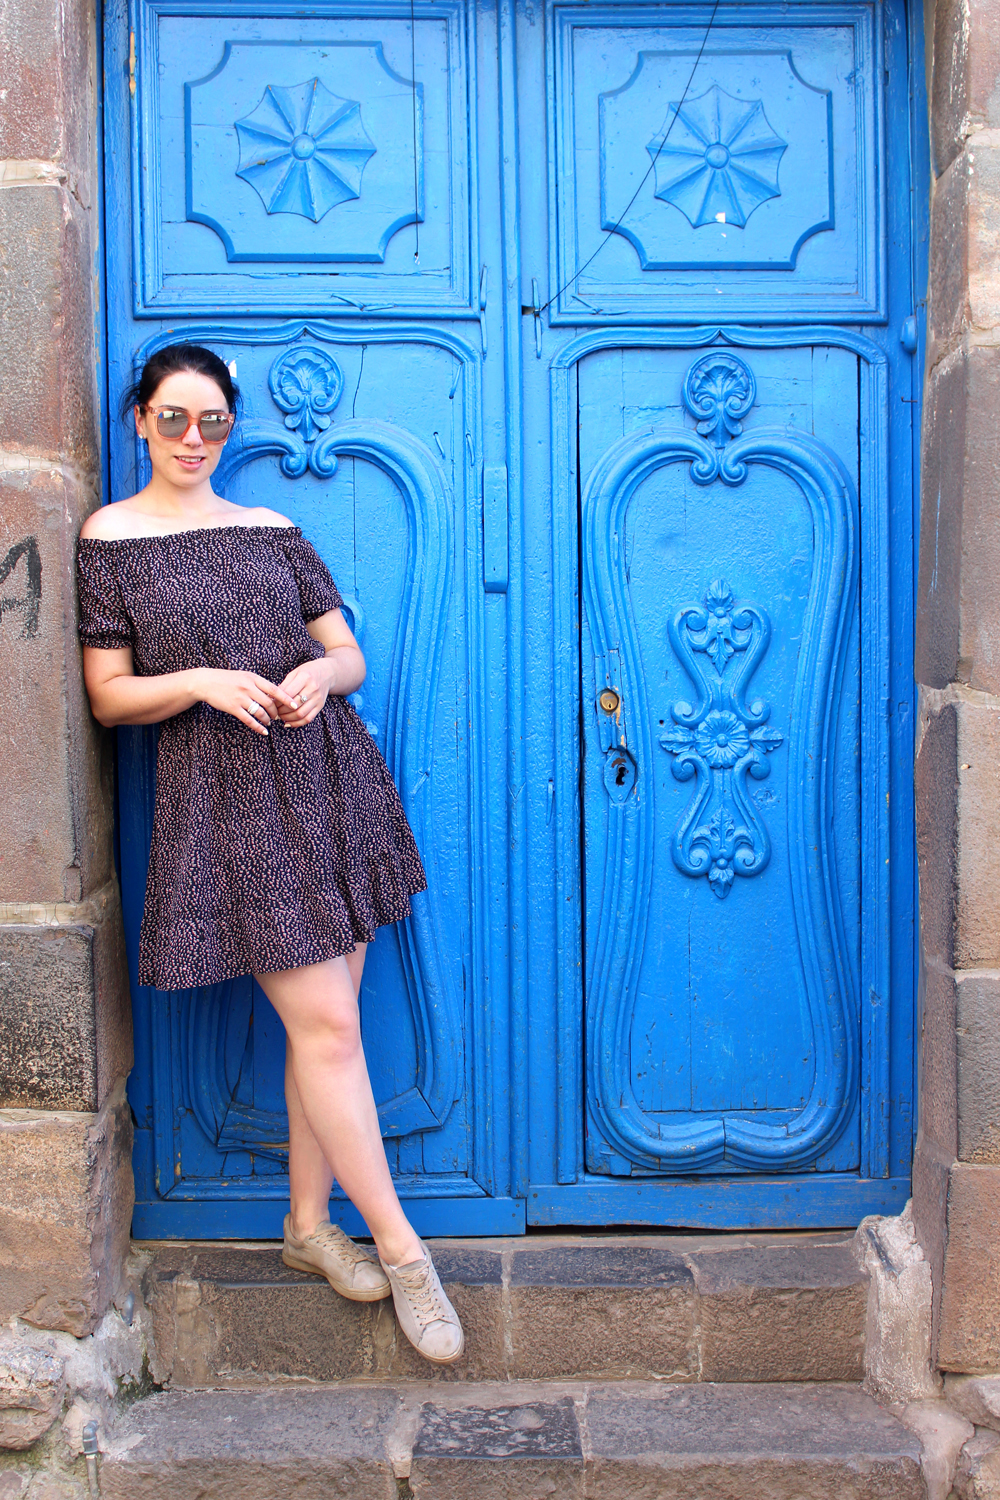 Emma Louise Layla in Cusco, Peru - lifestyle & travel blog